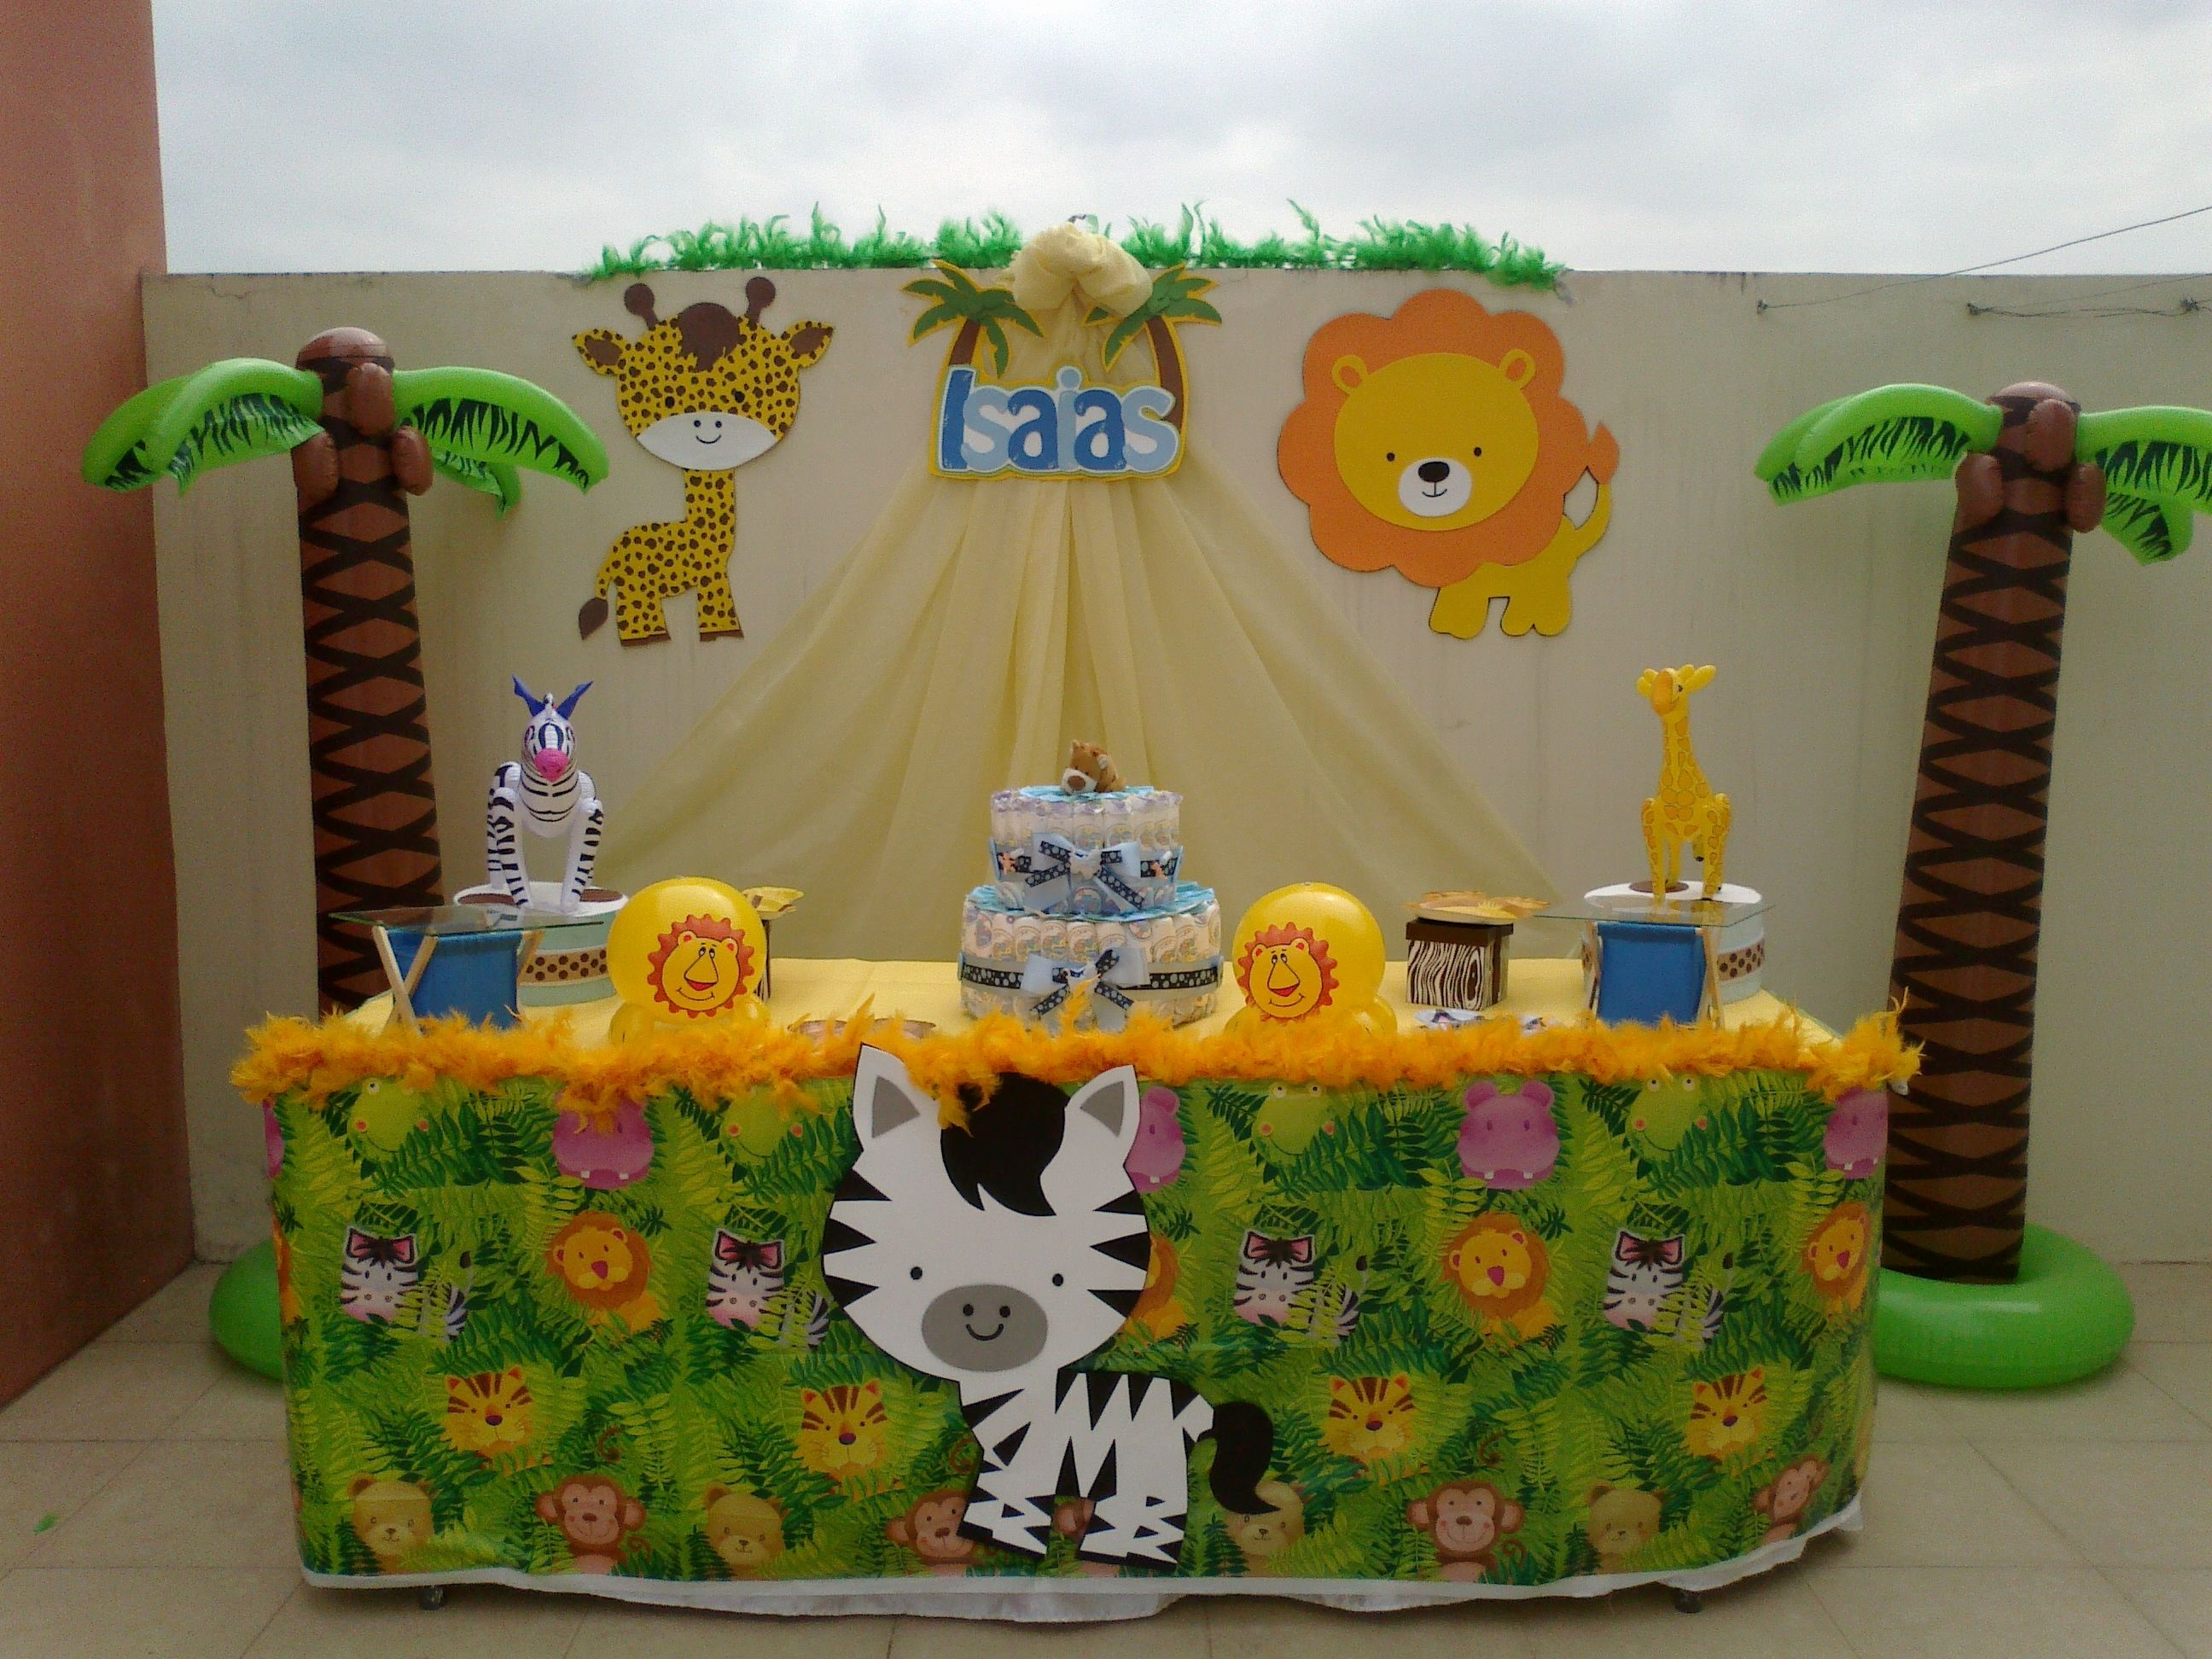 Décoration Safari Anniversaire Decoración De Baby Shower De Safari Imagui CumpleaÑos